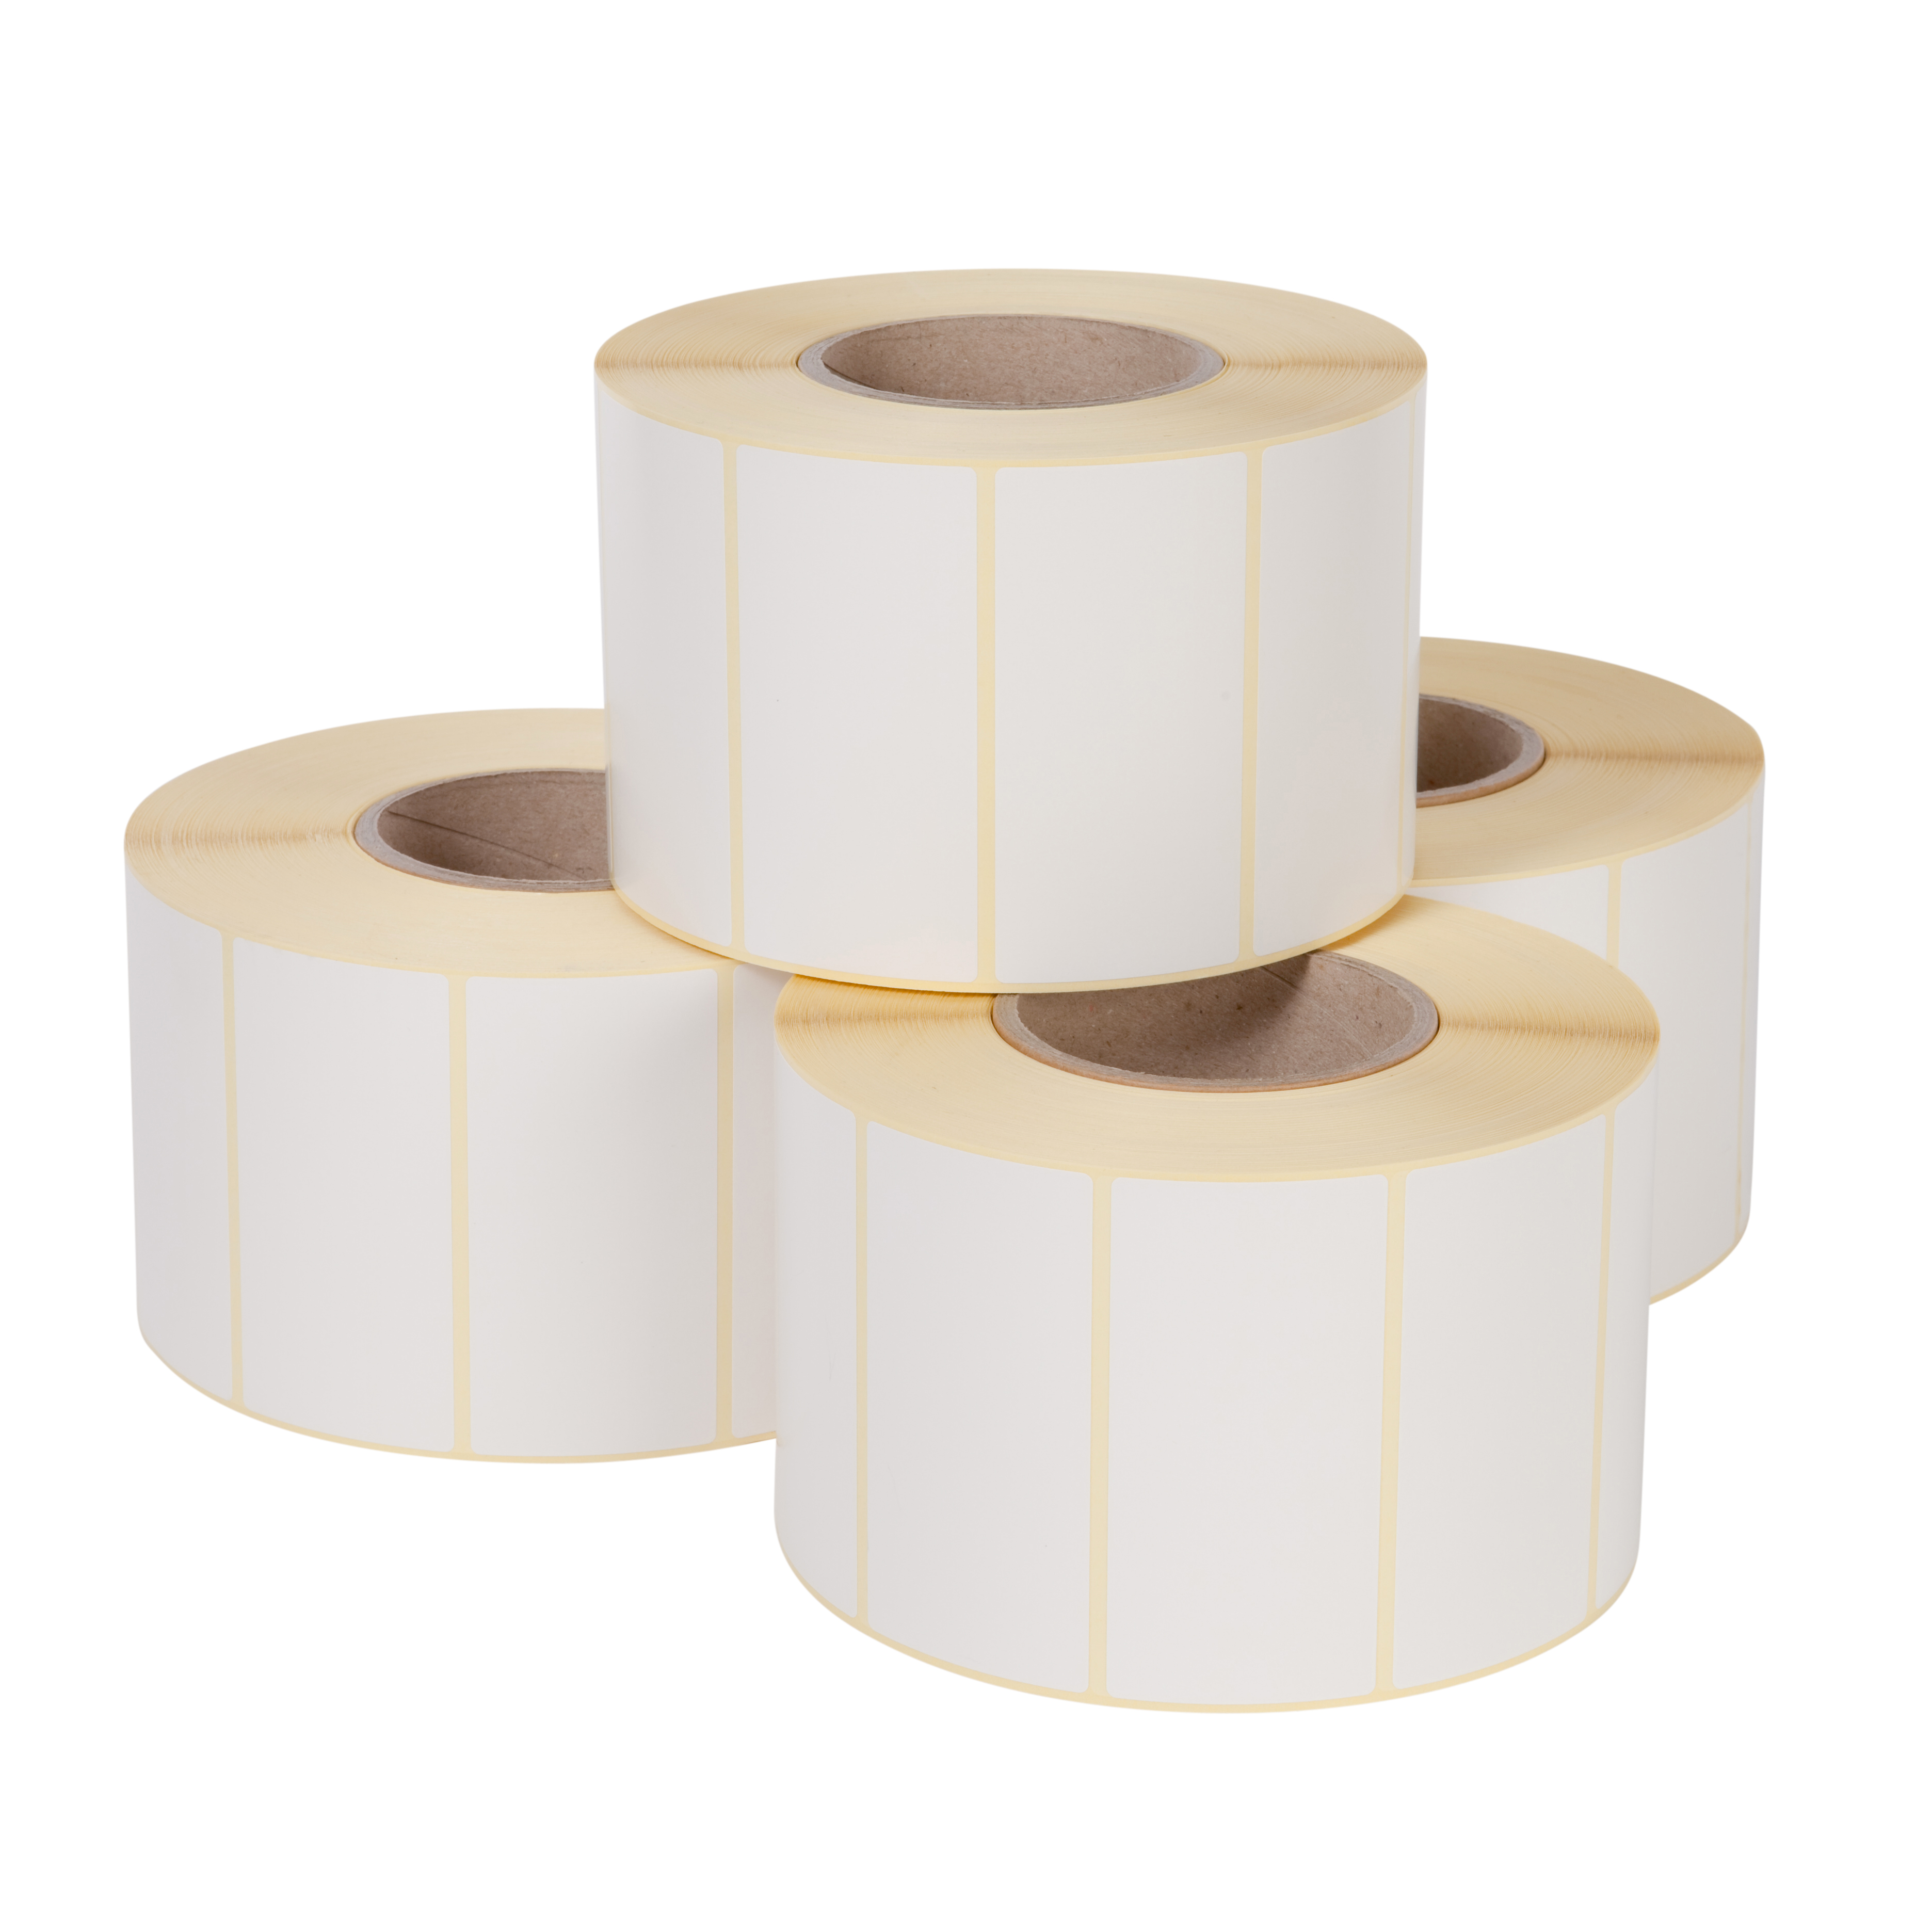 Direct thermal label rolls